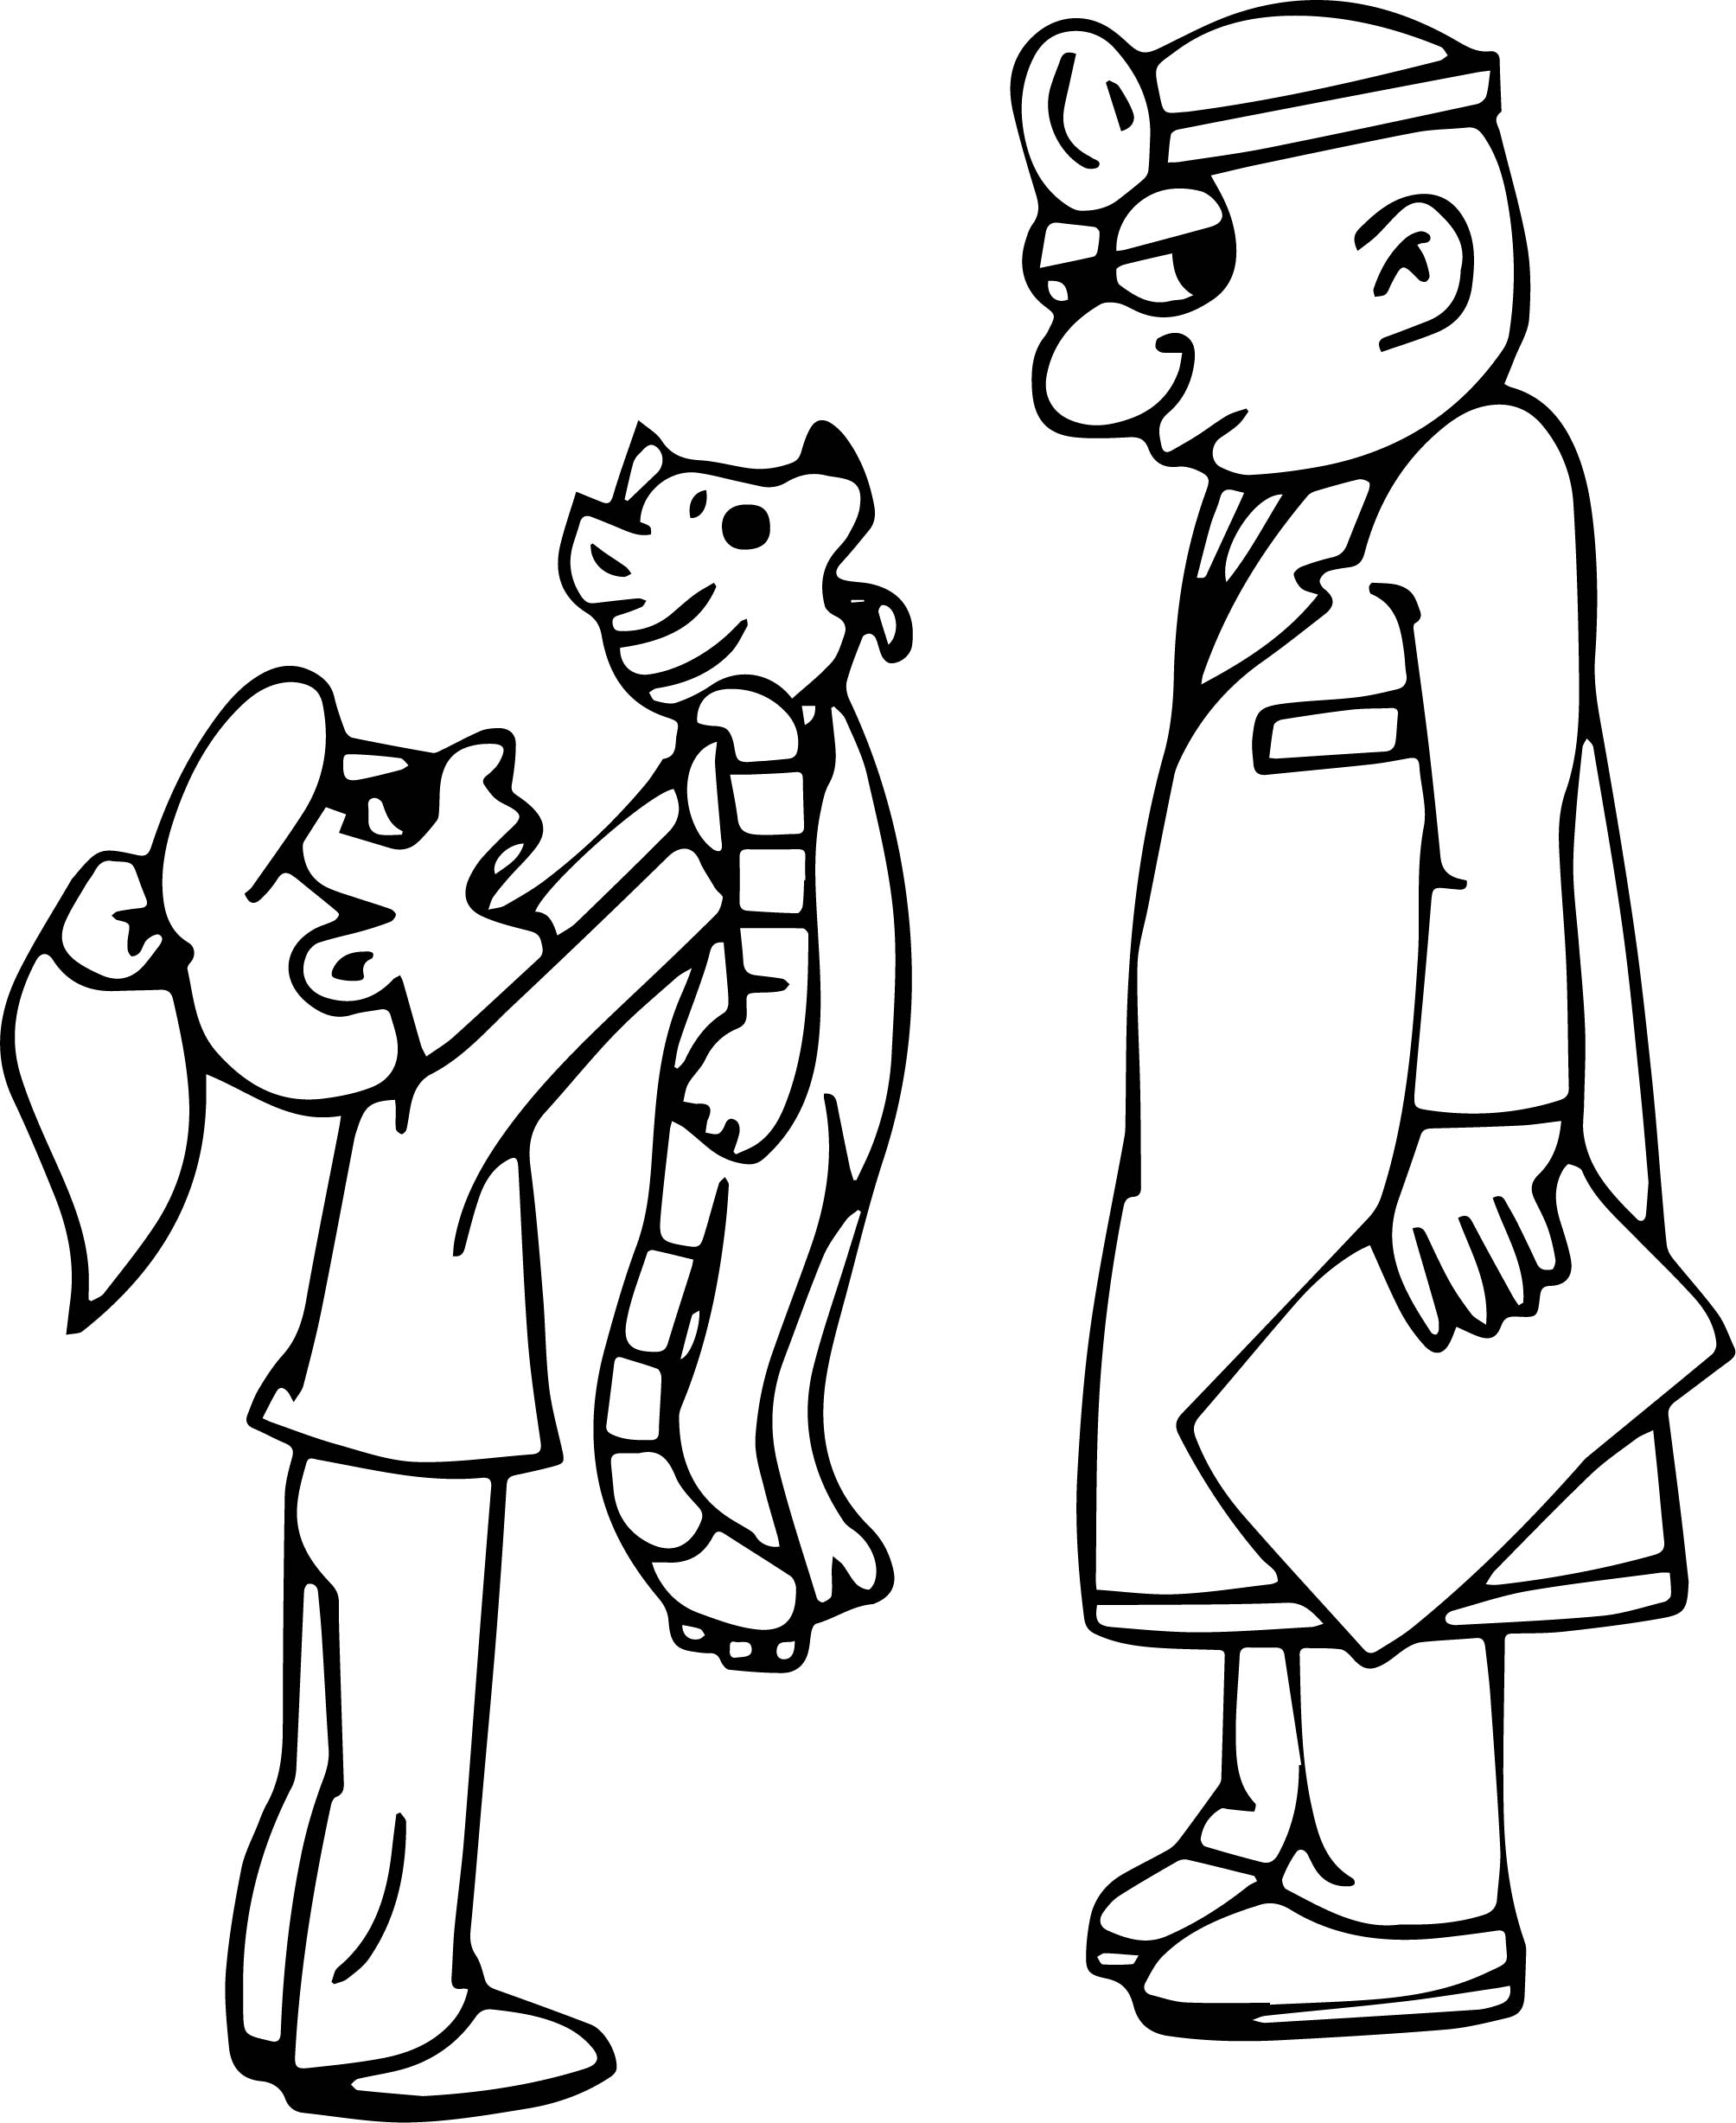 Pediatrician Veterinarian Kid Girl And Cat Coloring Page